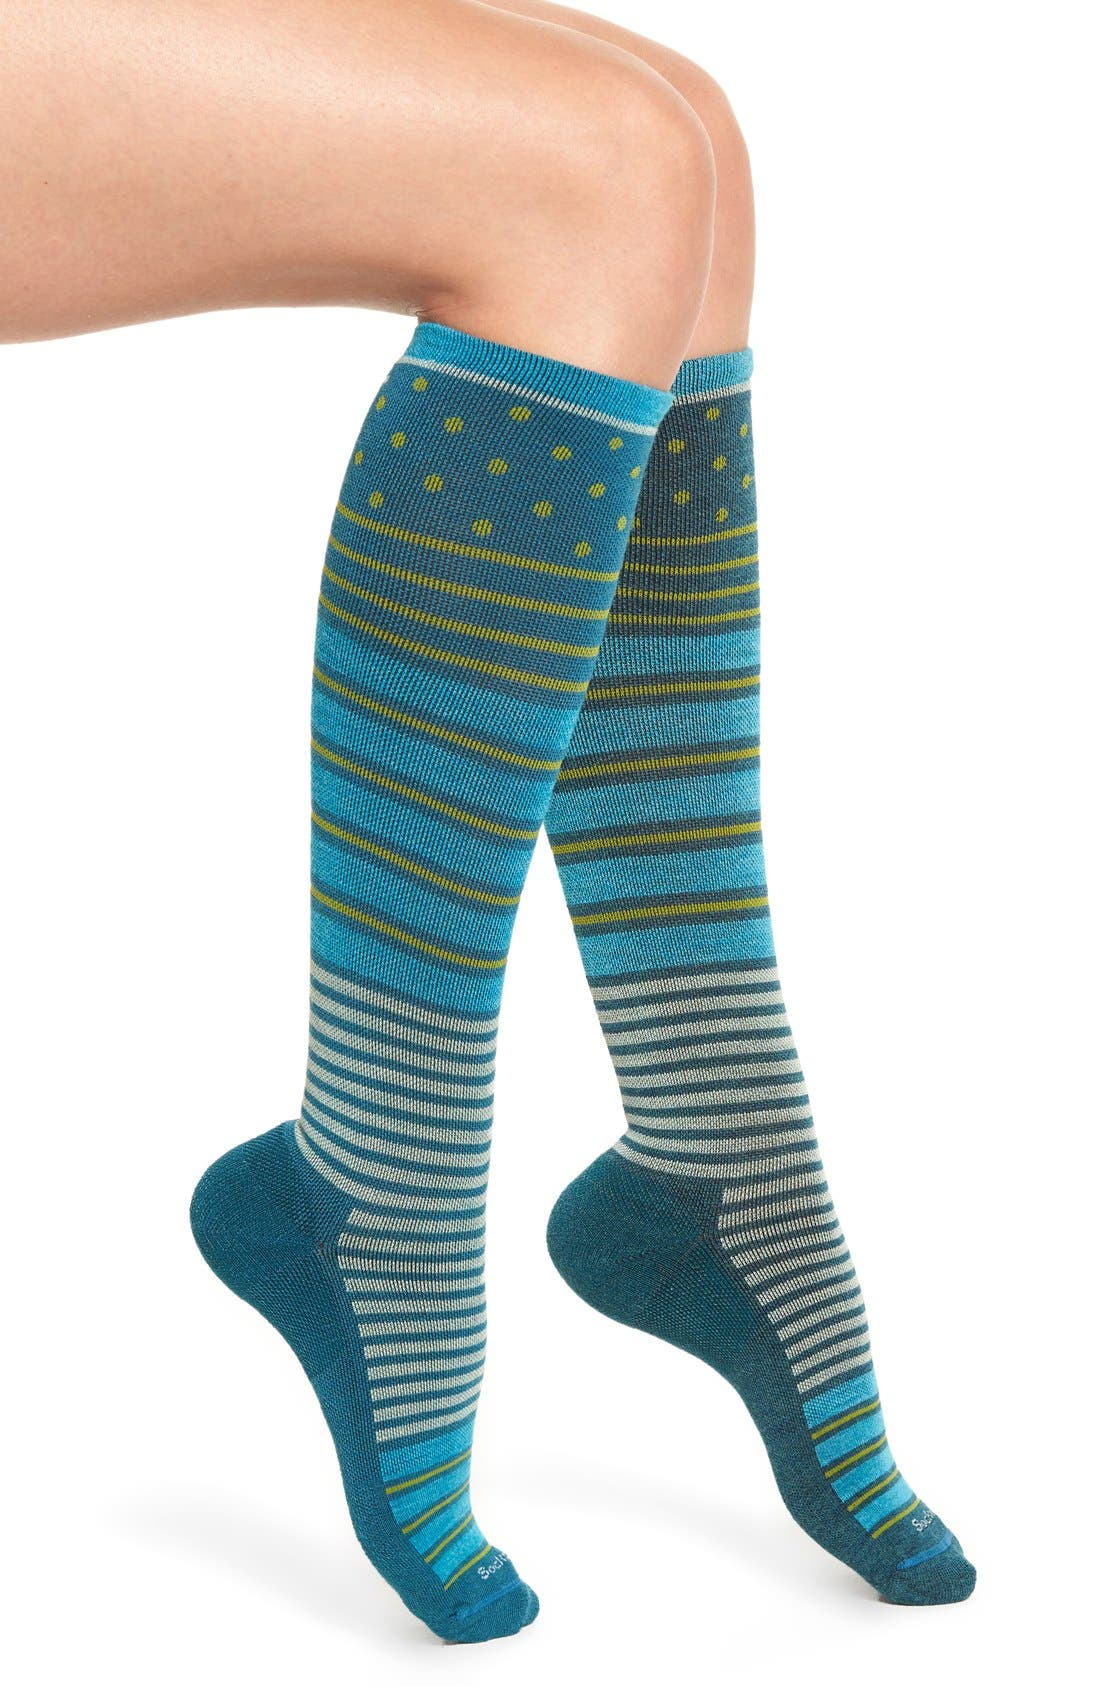 'Twister' Merino Wool Blend Compression Socks,                             Main thumbnail 1, color,                             Teal